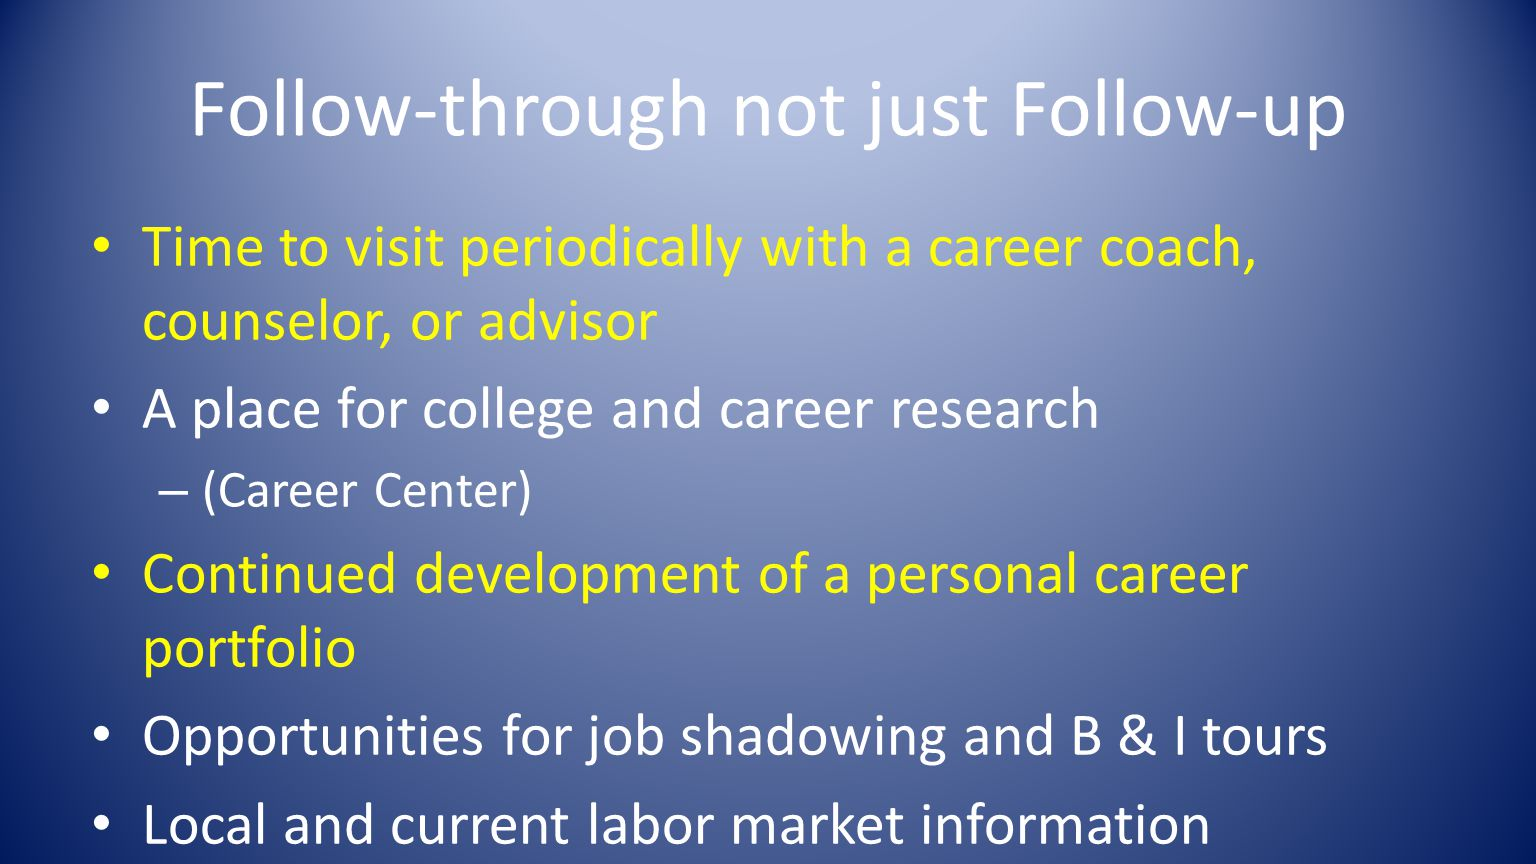 Follow-through not just Follow-up Time to visit periodically with a career coach, counselor, or advisor A place for college and career research – (Career Center) Continued development of a personal career portfolio Opportunities for job shadowing and B & I tours Local and current labor market information